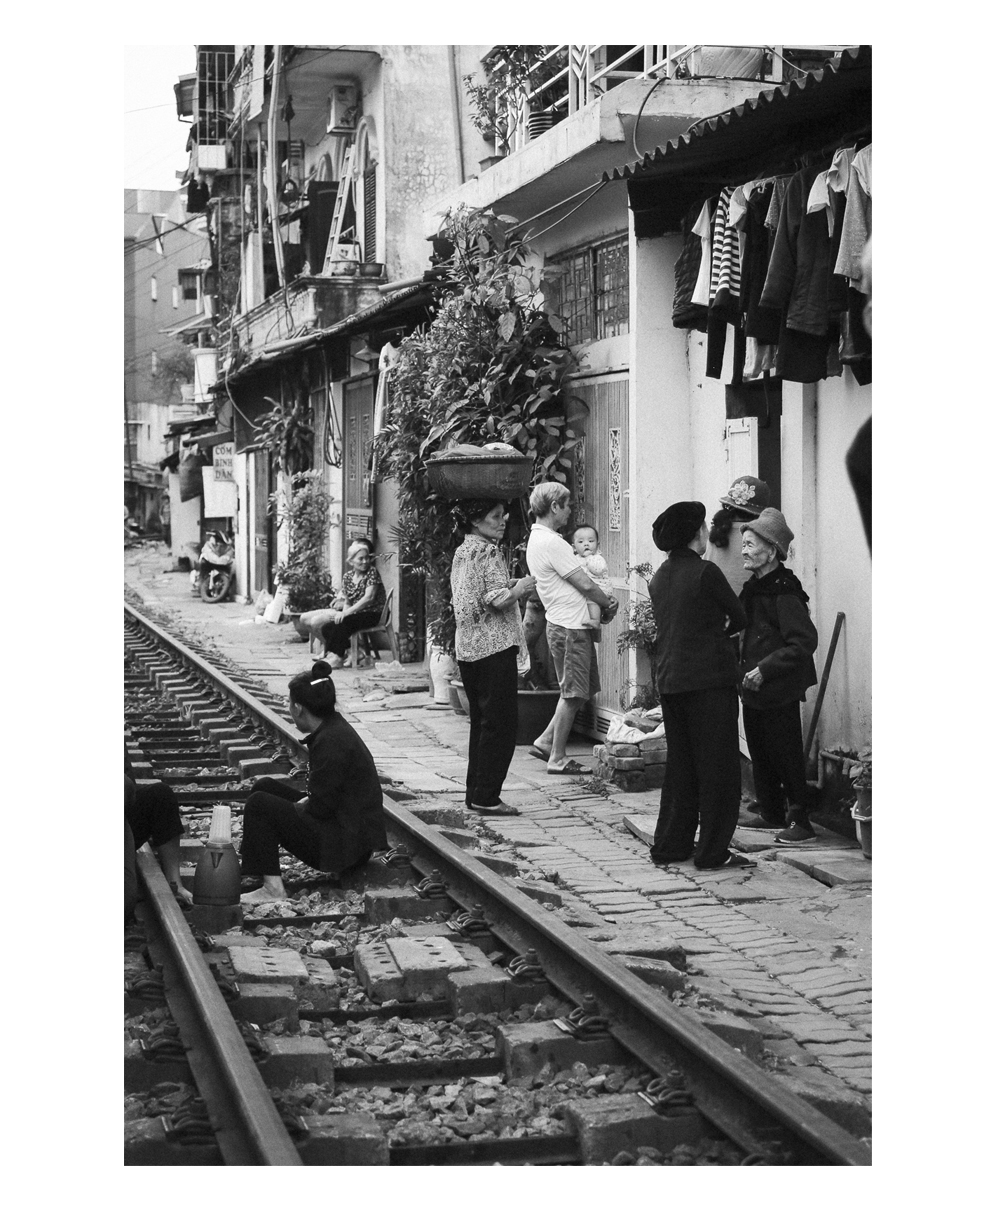 Hanoi_17_b, Hanoi, Vietnam, Photo and Travel Diary by The Curly Head, Photography by Amelie Niederbuchner,